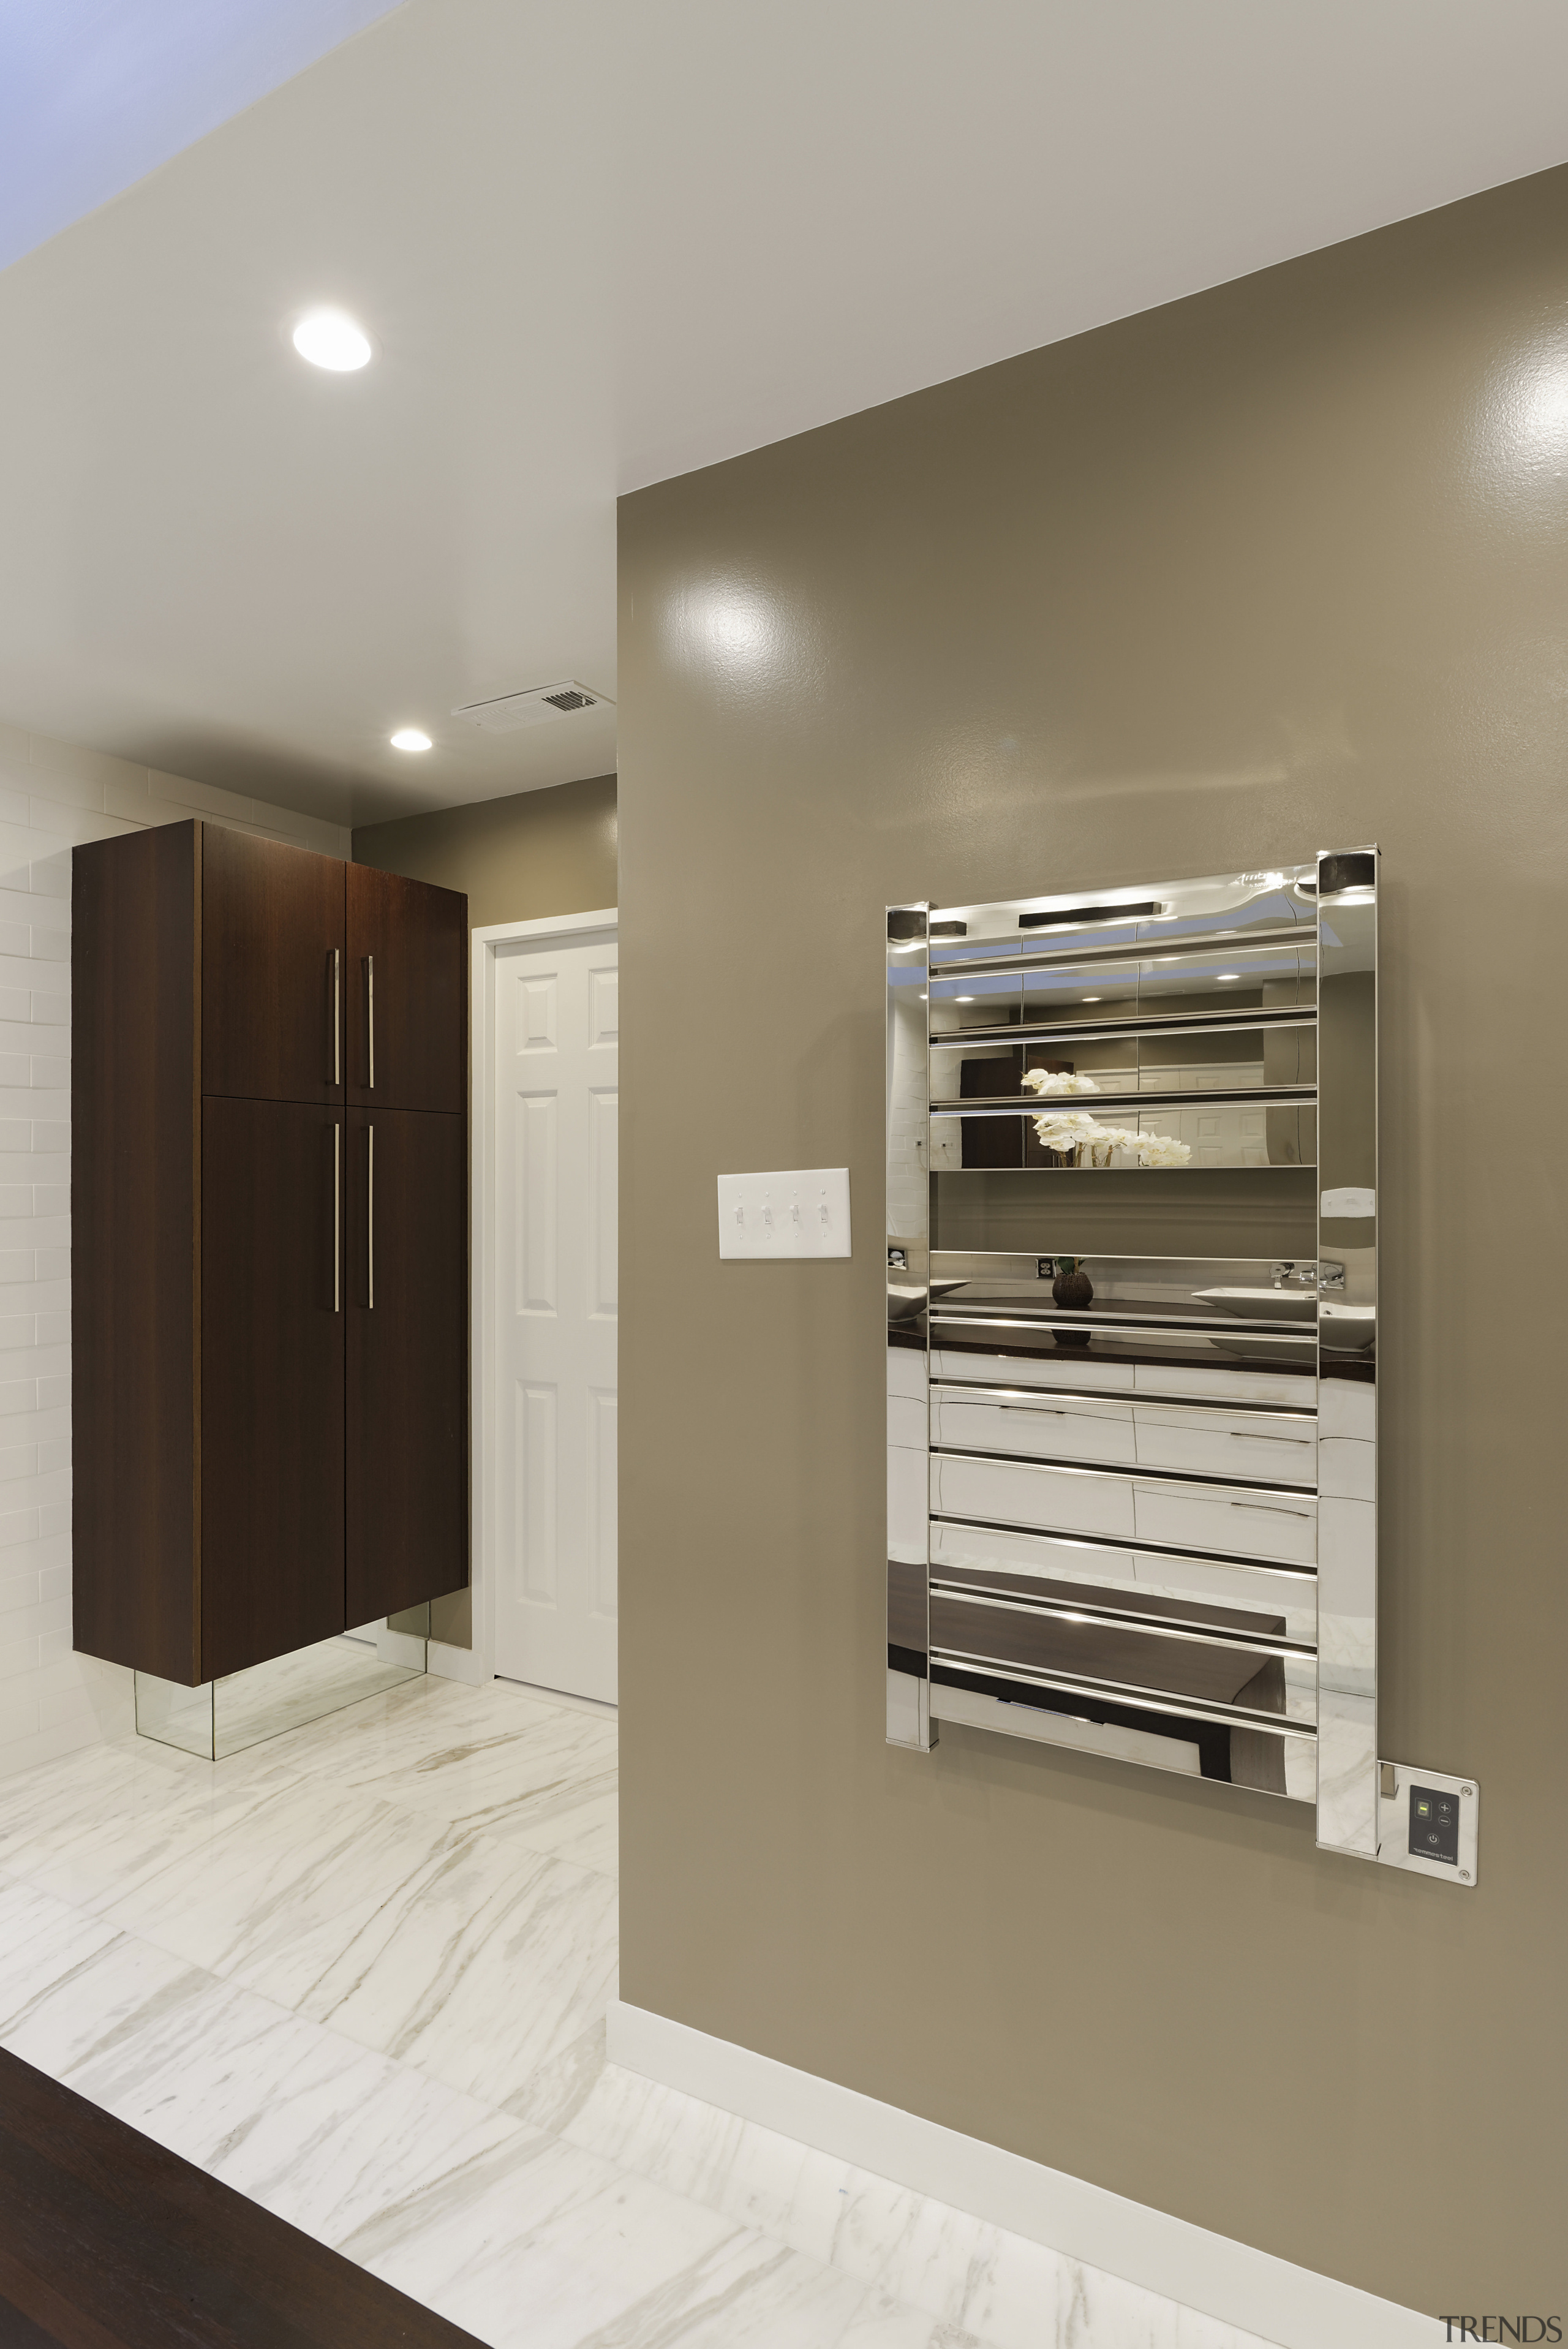 Chrome accessories set off this bathrooms high-end material floor, interior design, brown, gray